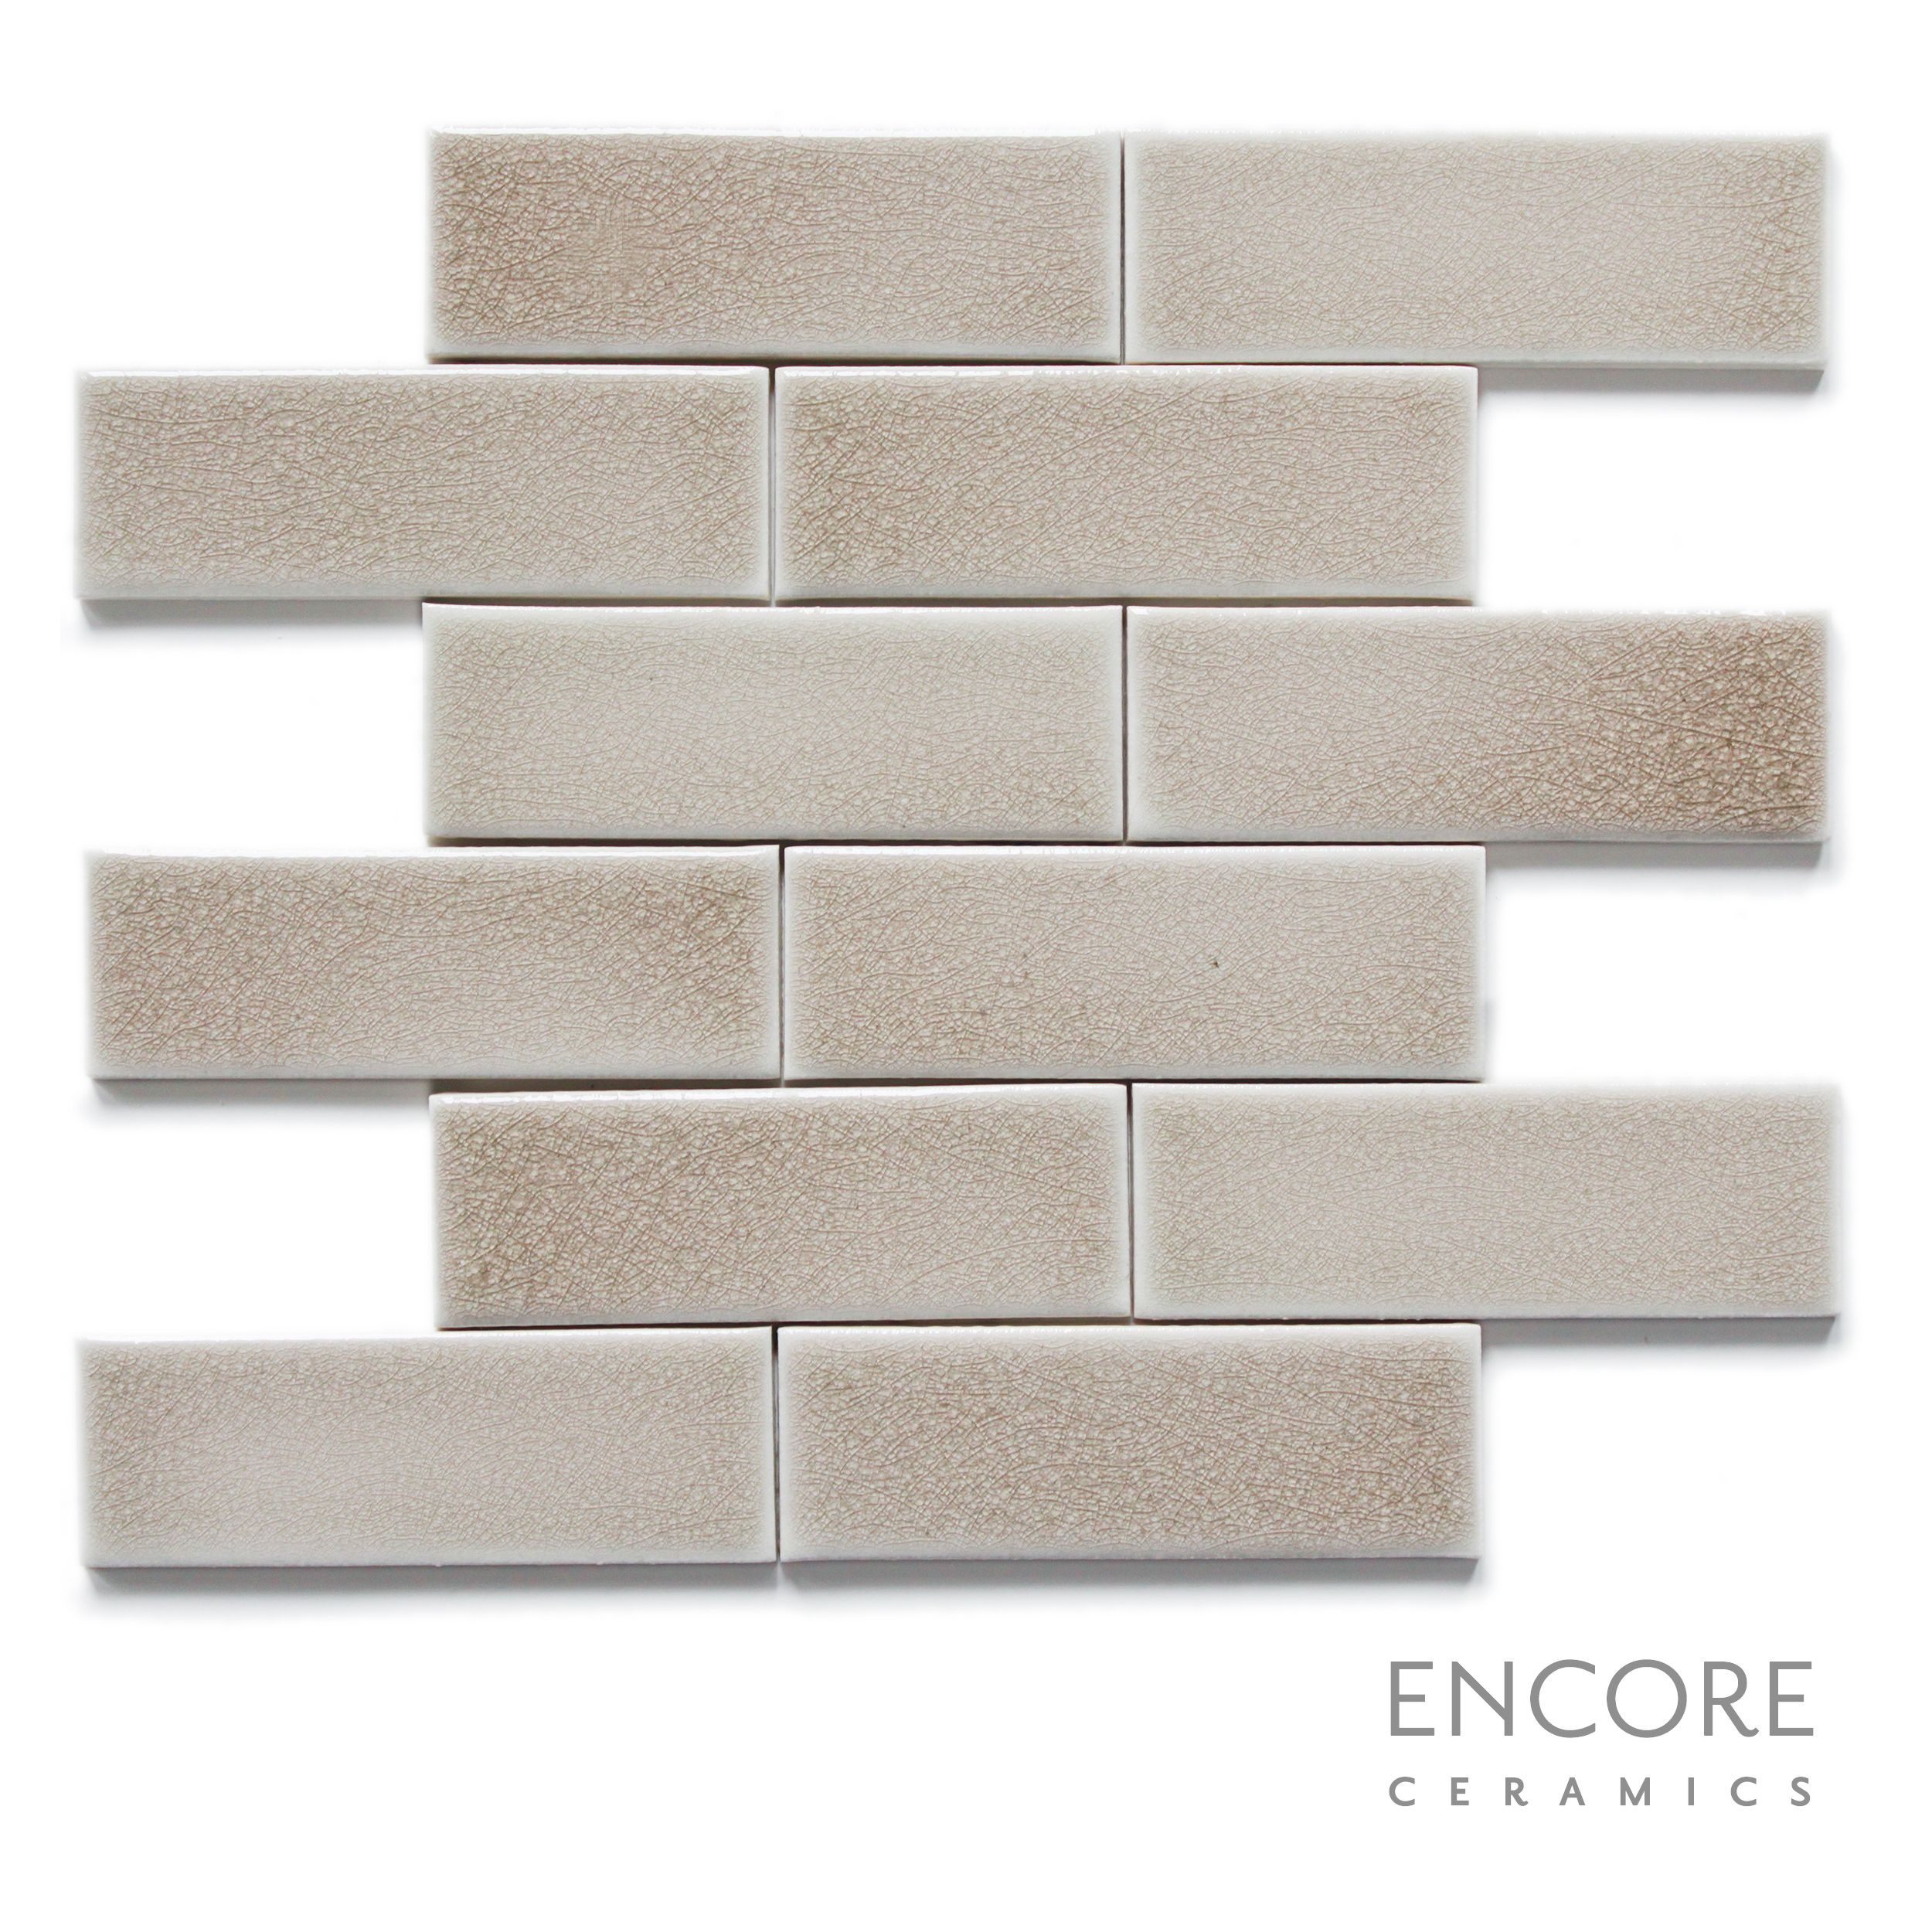 Allen roth glazed wall chocolate ceramic bullnose trim common 1 - Encore Ceramics 2 X 6 Field Tile Hand Glazed In Smoke Crackle Sustainably